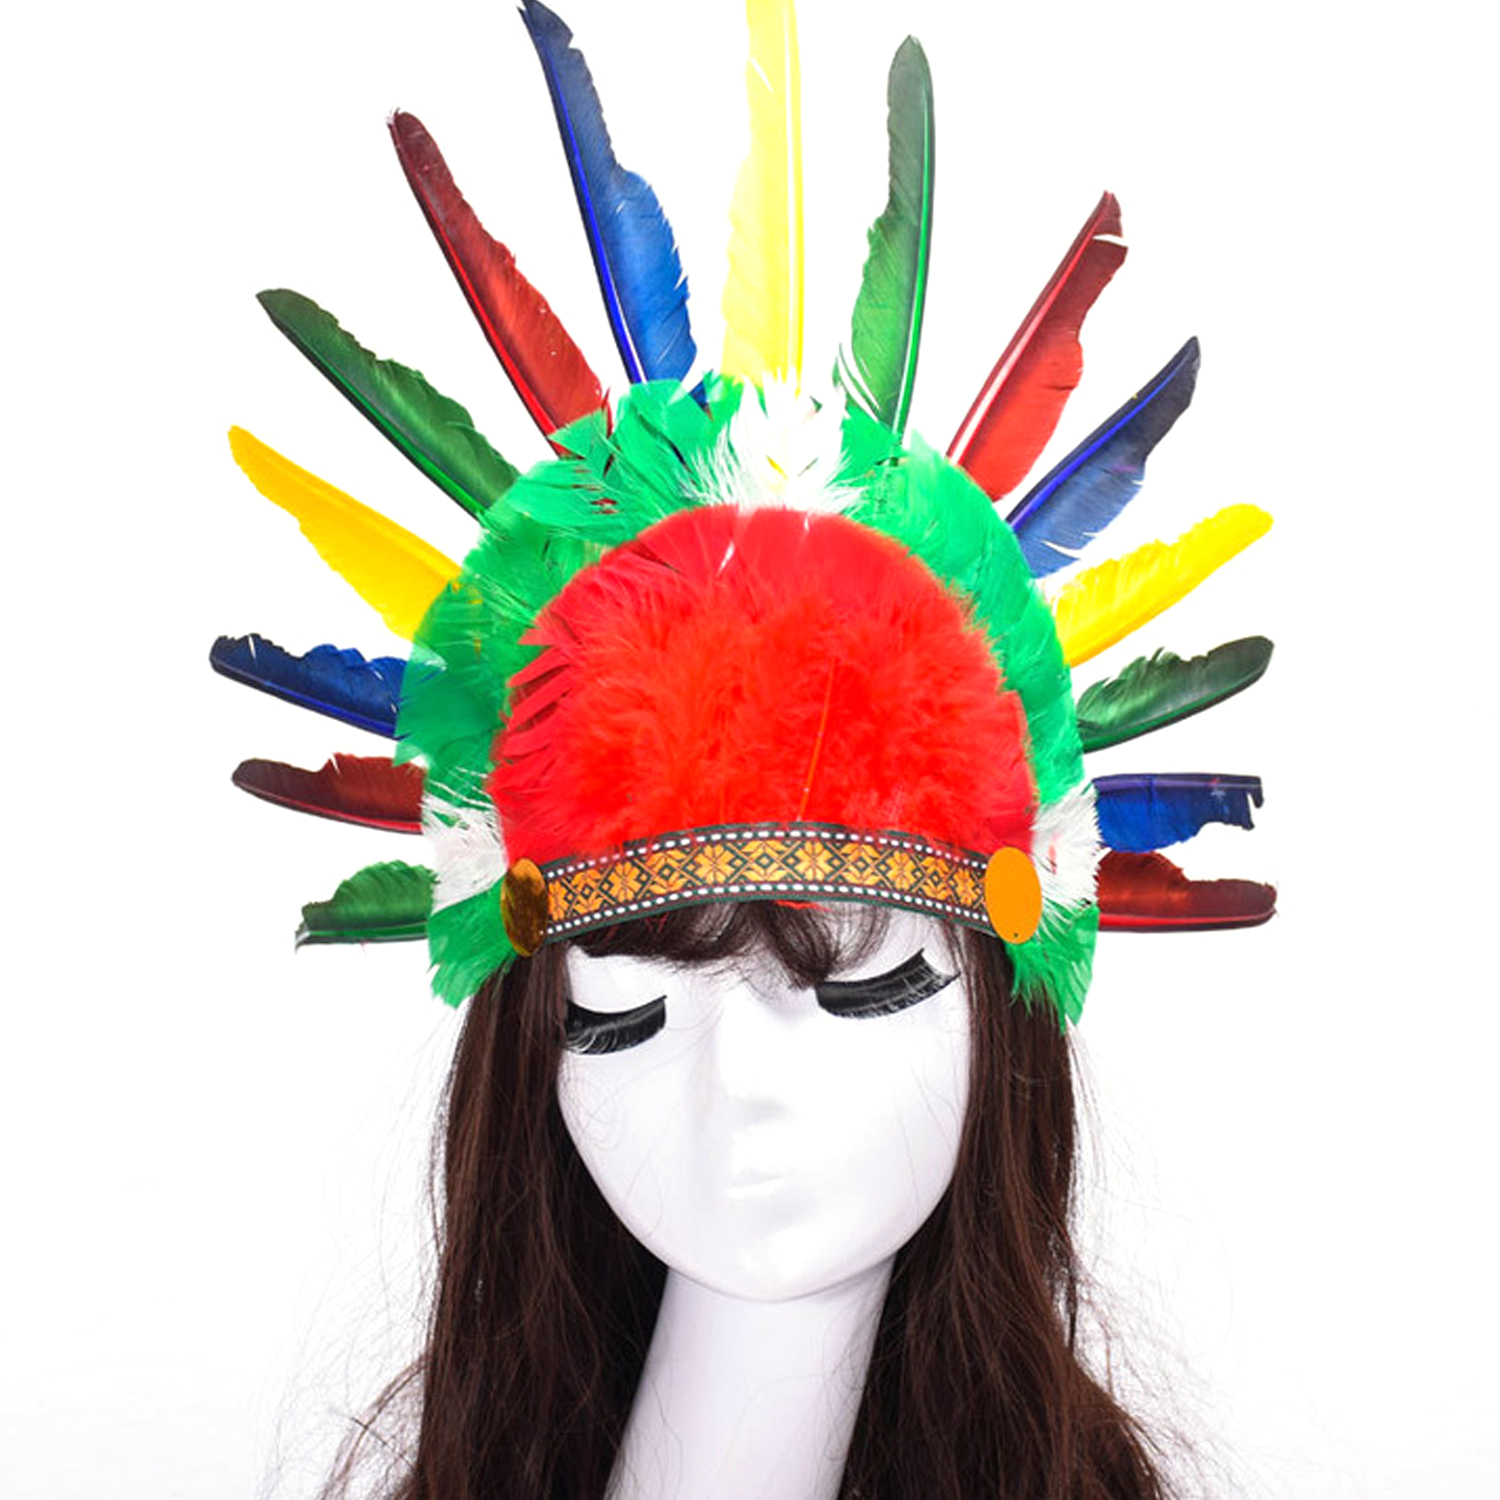 Vintage Indian Style Feather Headband Headpiece Headdress For Kids Adults Thanksgiving Masquerade Party Costume